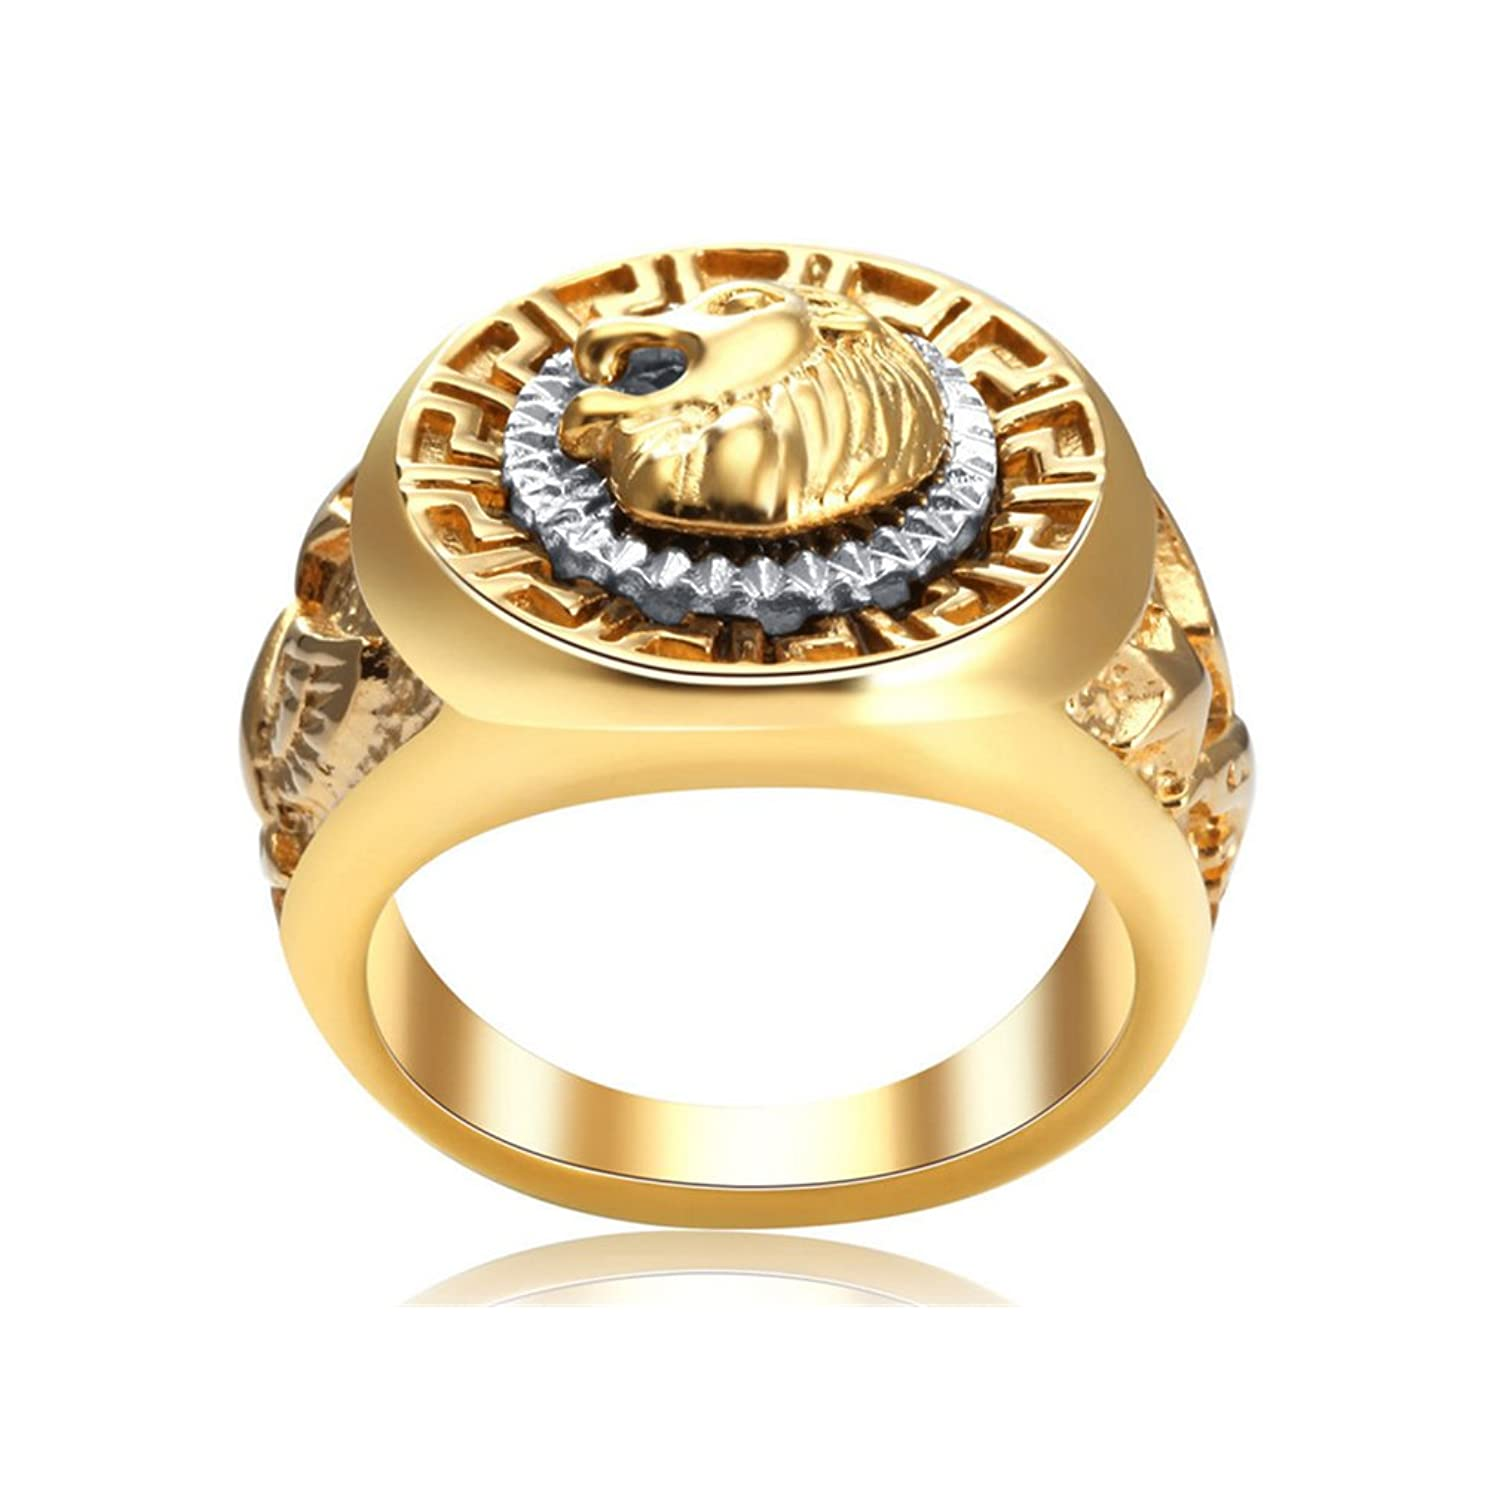 ring winsant buy jewellery fashion only gold low com stylish thumb women men for india finger on challa product prices in plated dzinetrendzbrass at